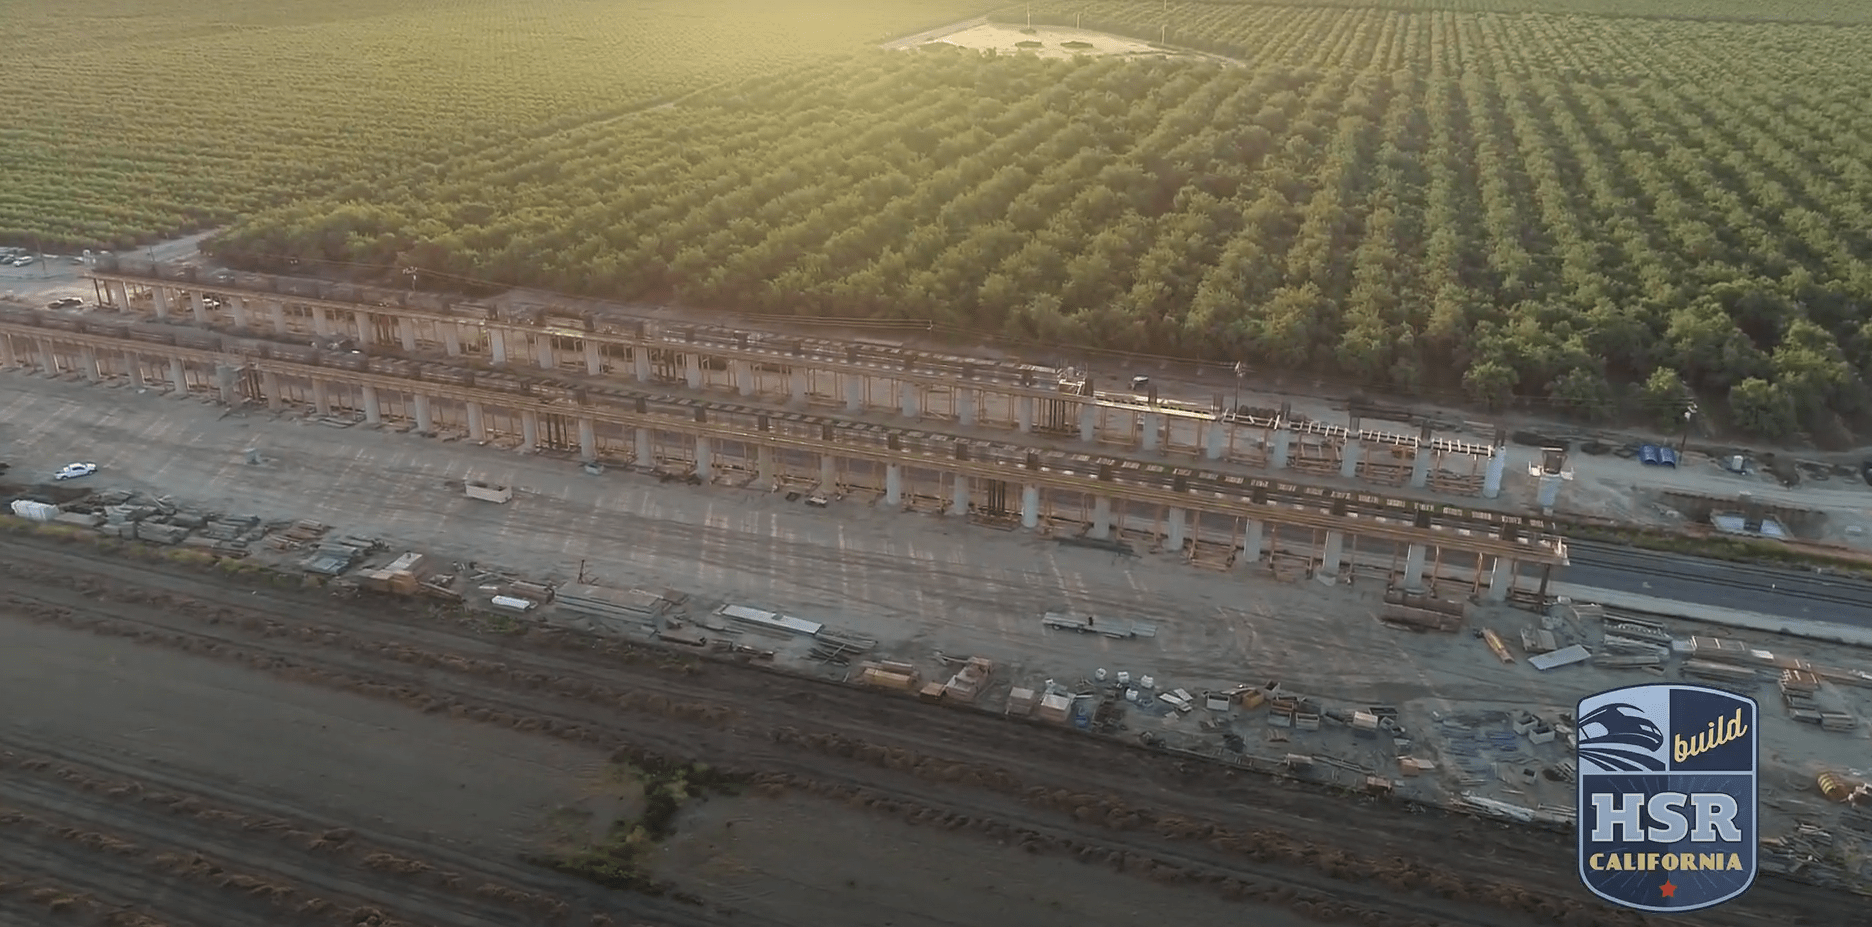 Massive structures such as these can be seen over 100 miles of the Central Valley. Photo: CAHSRA